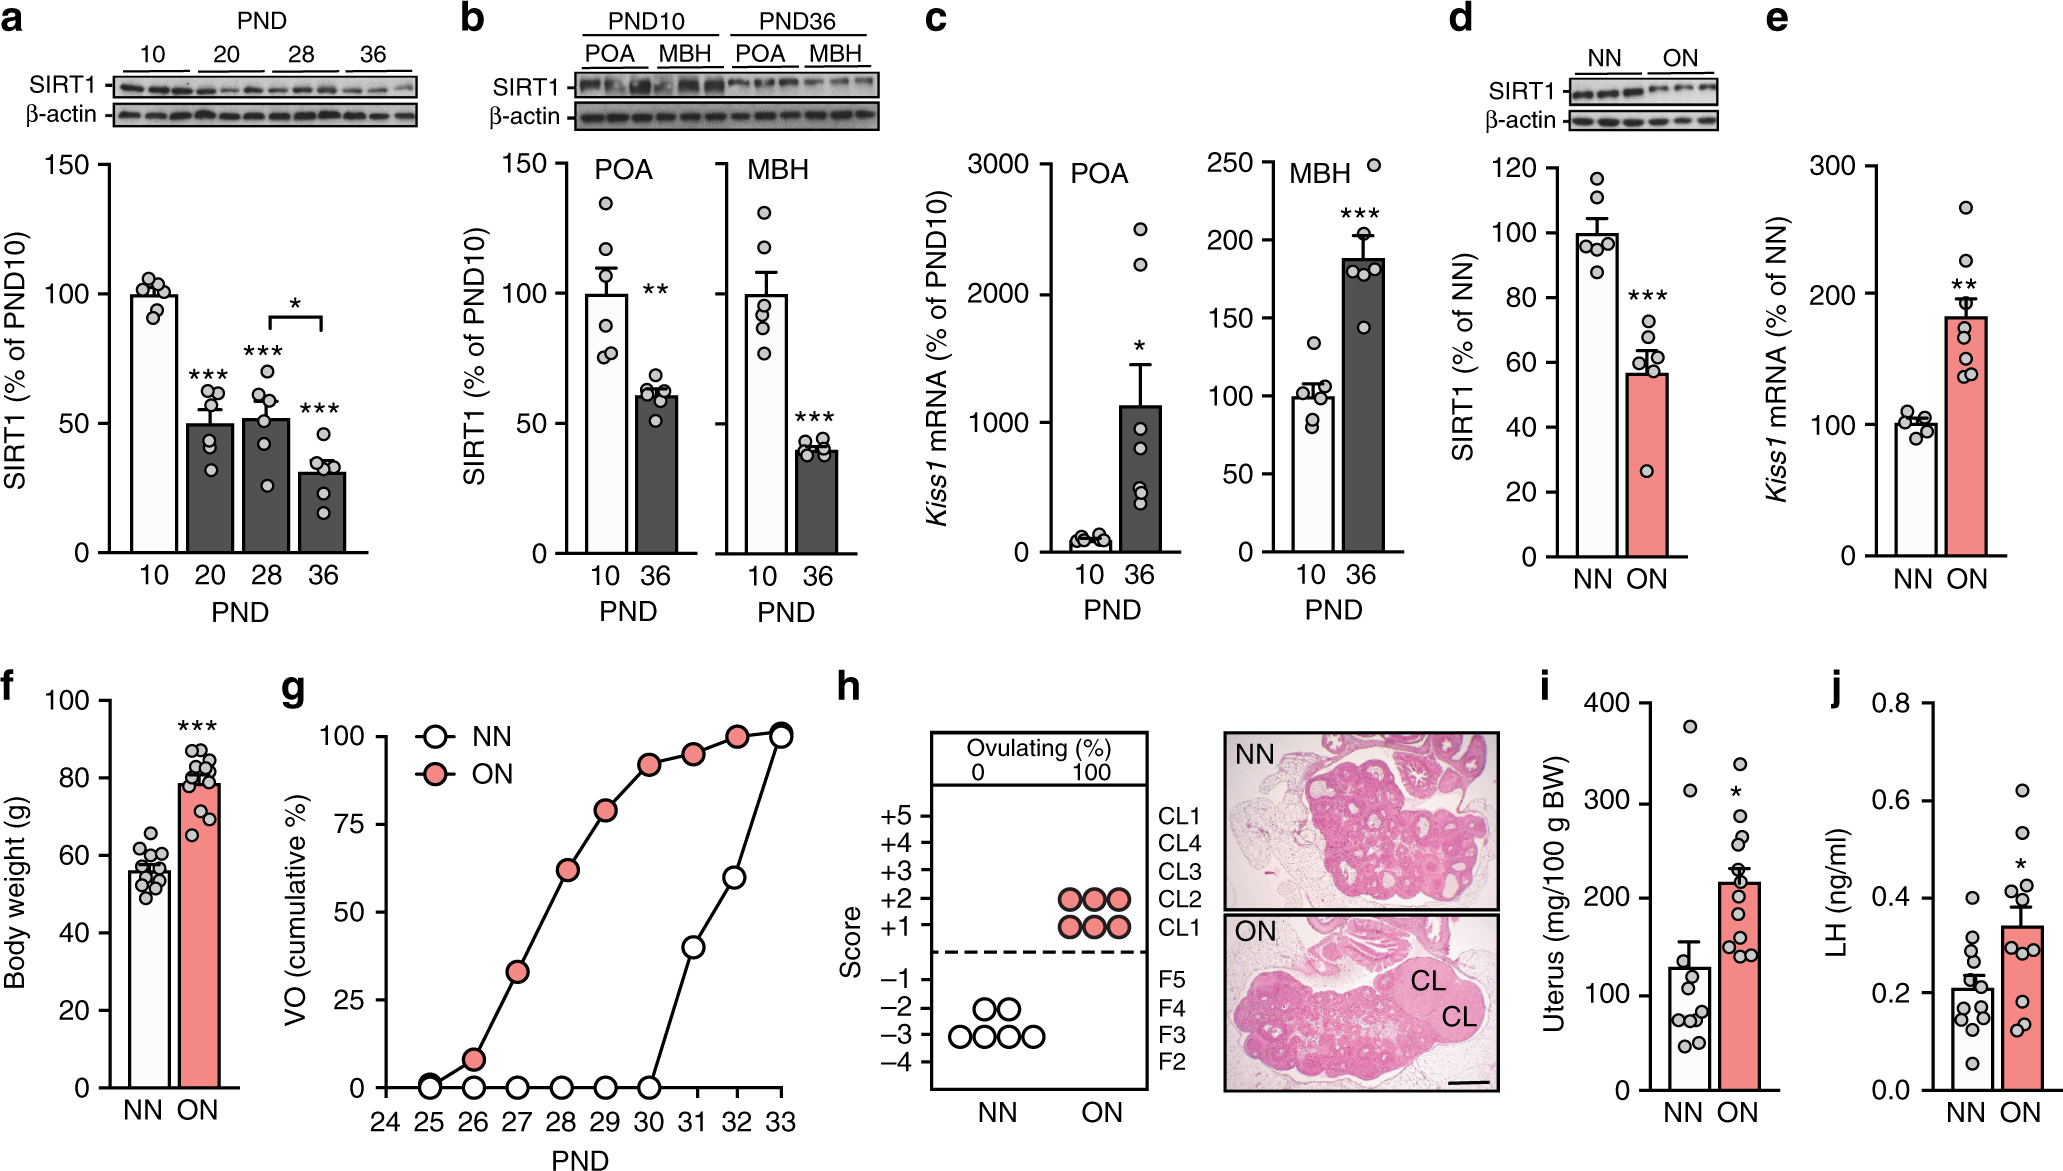 Sirt1 Mediates Obesity And Nutrient Dependent Perturbation Of Outlining Flex Circuits Integral Fingers Manufacturing Processes Pubertal Timing By Epigenetically Controlling Kiss1 Expression Nature Communications